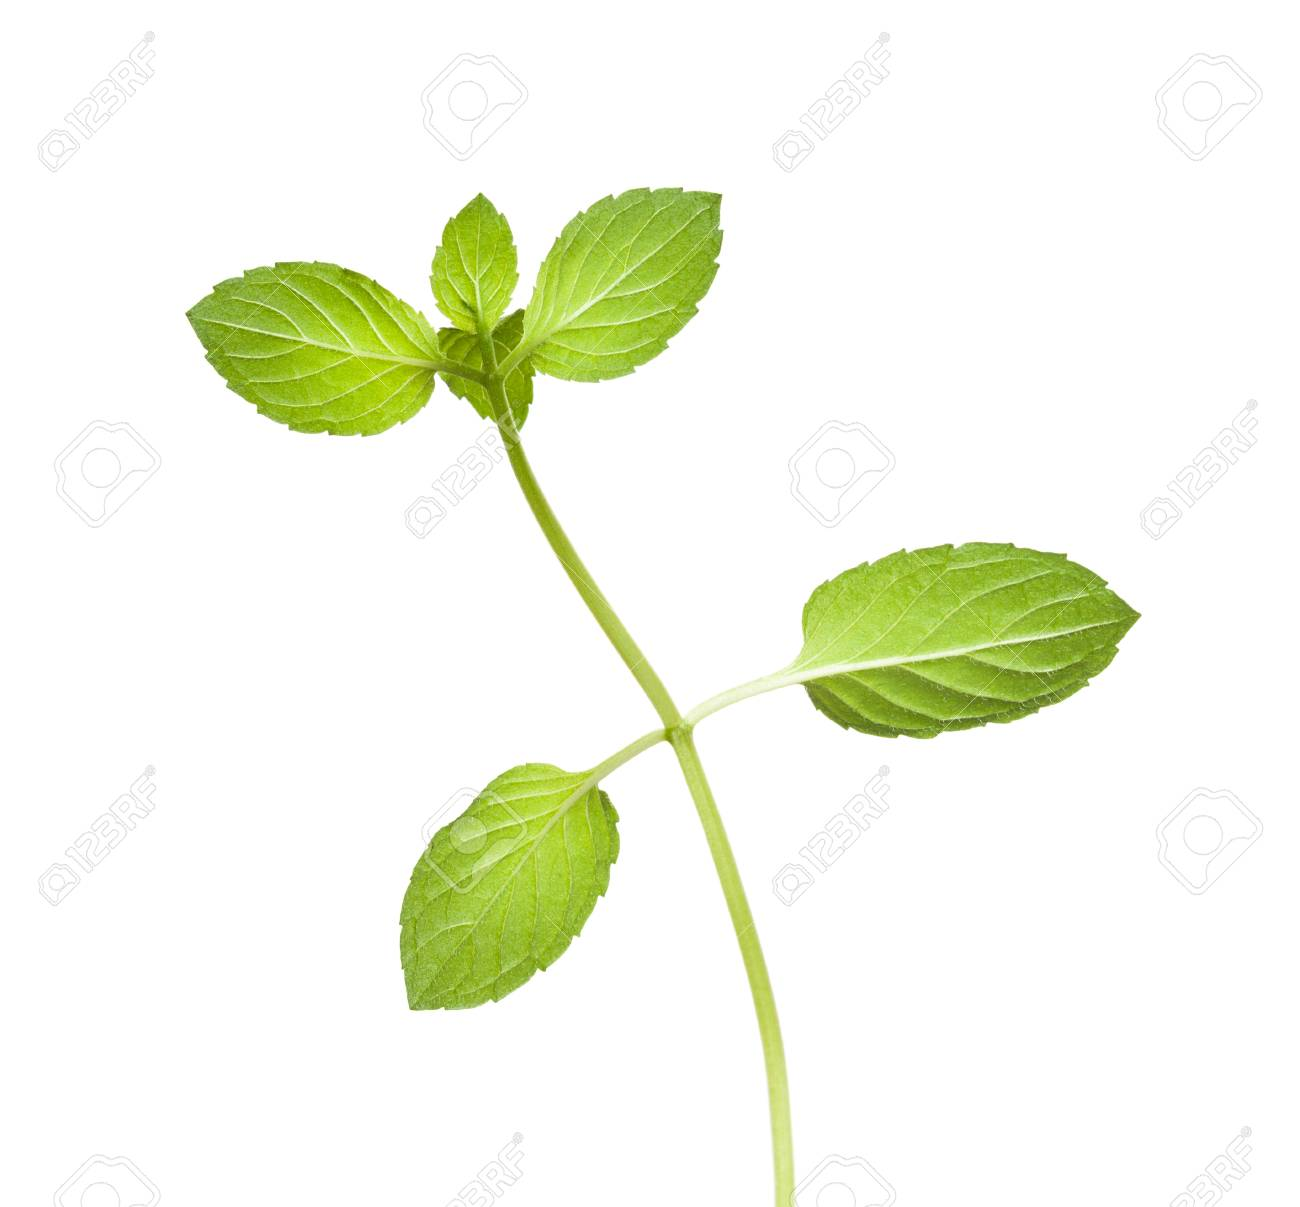 Overleaf of peppermint Mentha piperita twig isolated on white